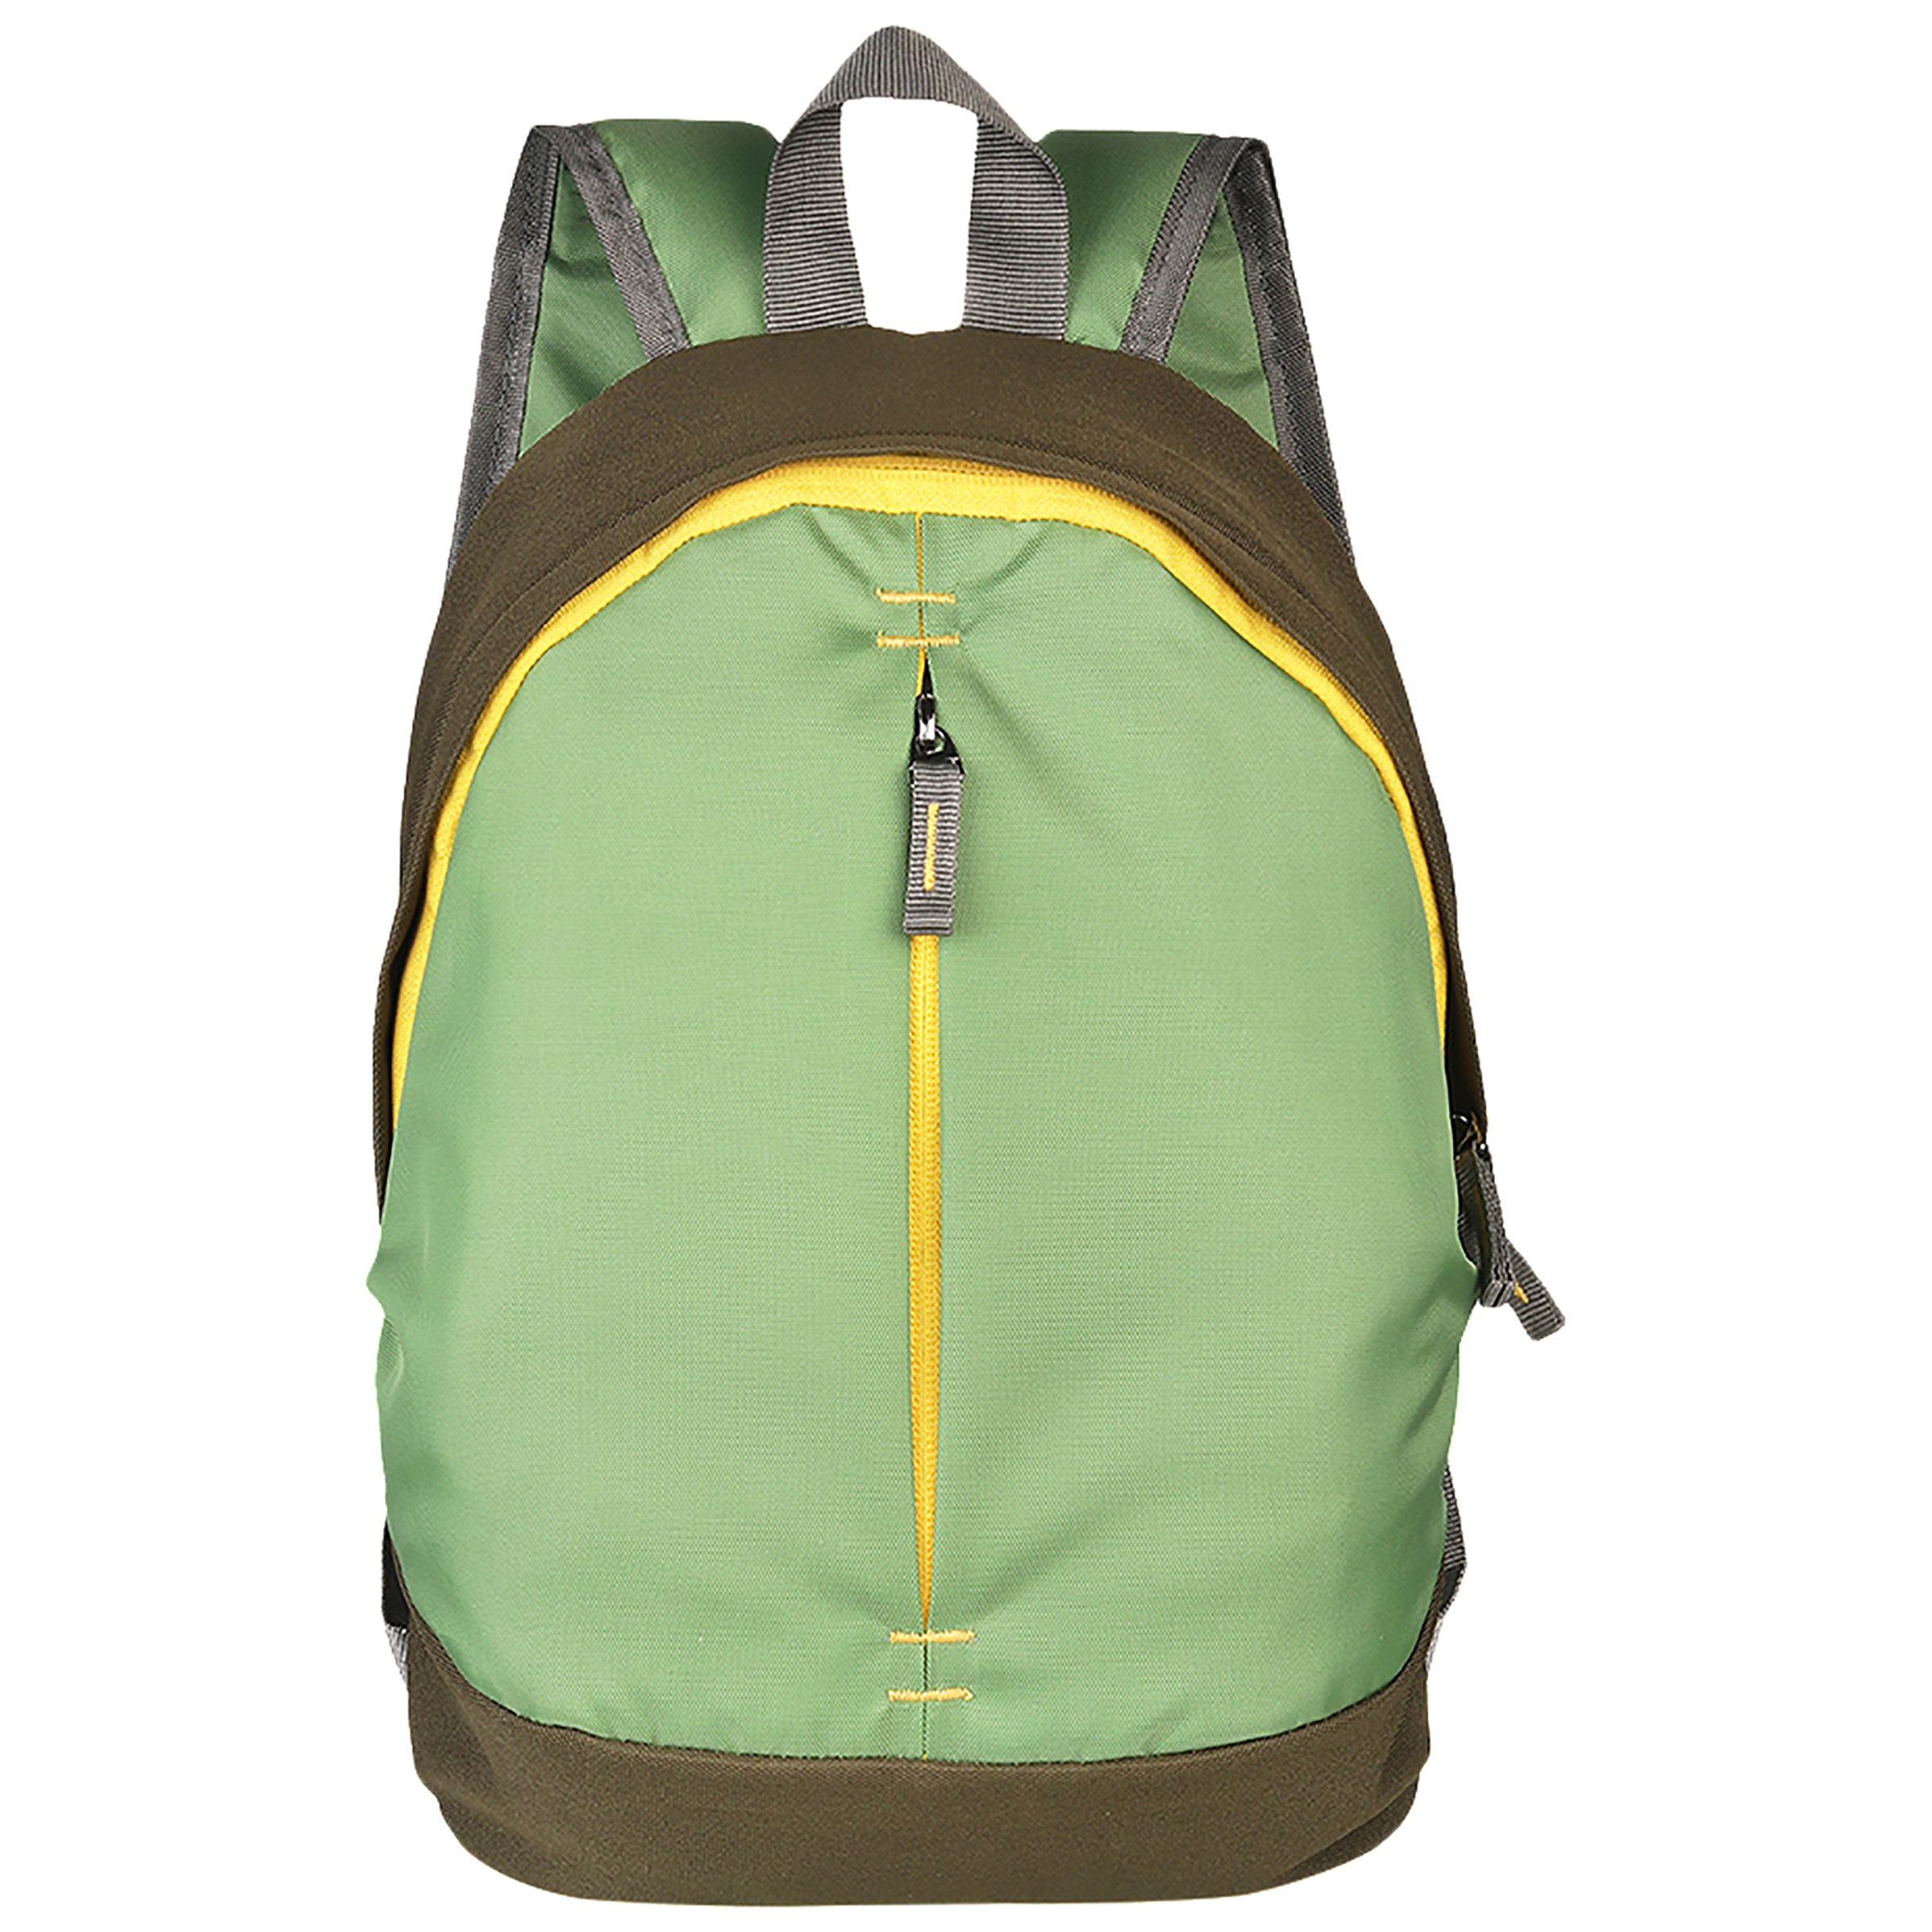 Kooltopp Utility 9 Litres Polyester Backpack for 15.6 Inch Laptop (Water Resistant, KT437-09, Green)_1